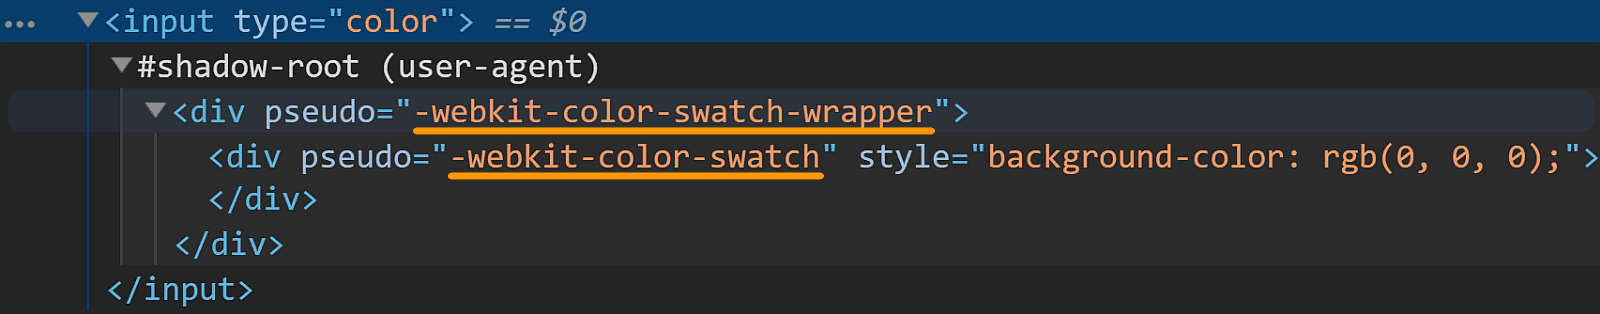 Screenshot of Chrome DevTools showing the shadow DOM of the <input type='color'>. Right at the top, we have a div which is the swatch wrapper and can be accessed using ::-webkit-color-swatch-wrapper. Inside it, there's another div which is the swatch and can be accessed using ::-webkit-color-swatch. This div has the background-color set to the value of the parent color input.